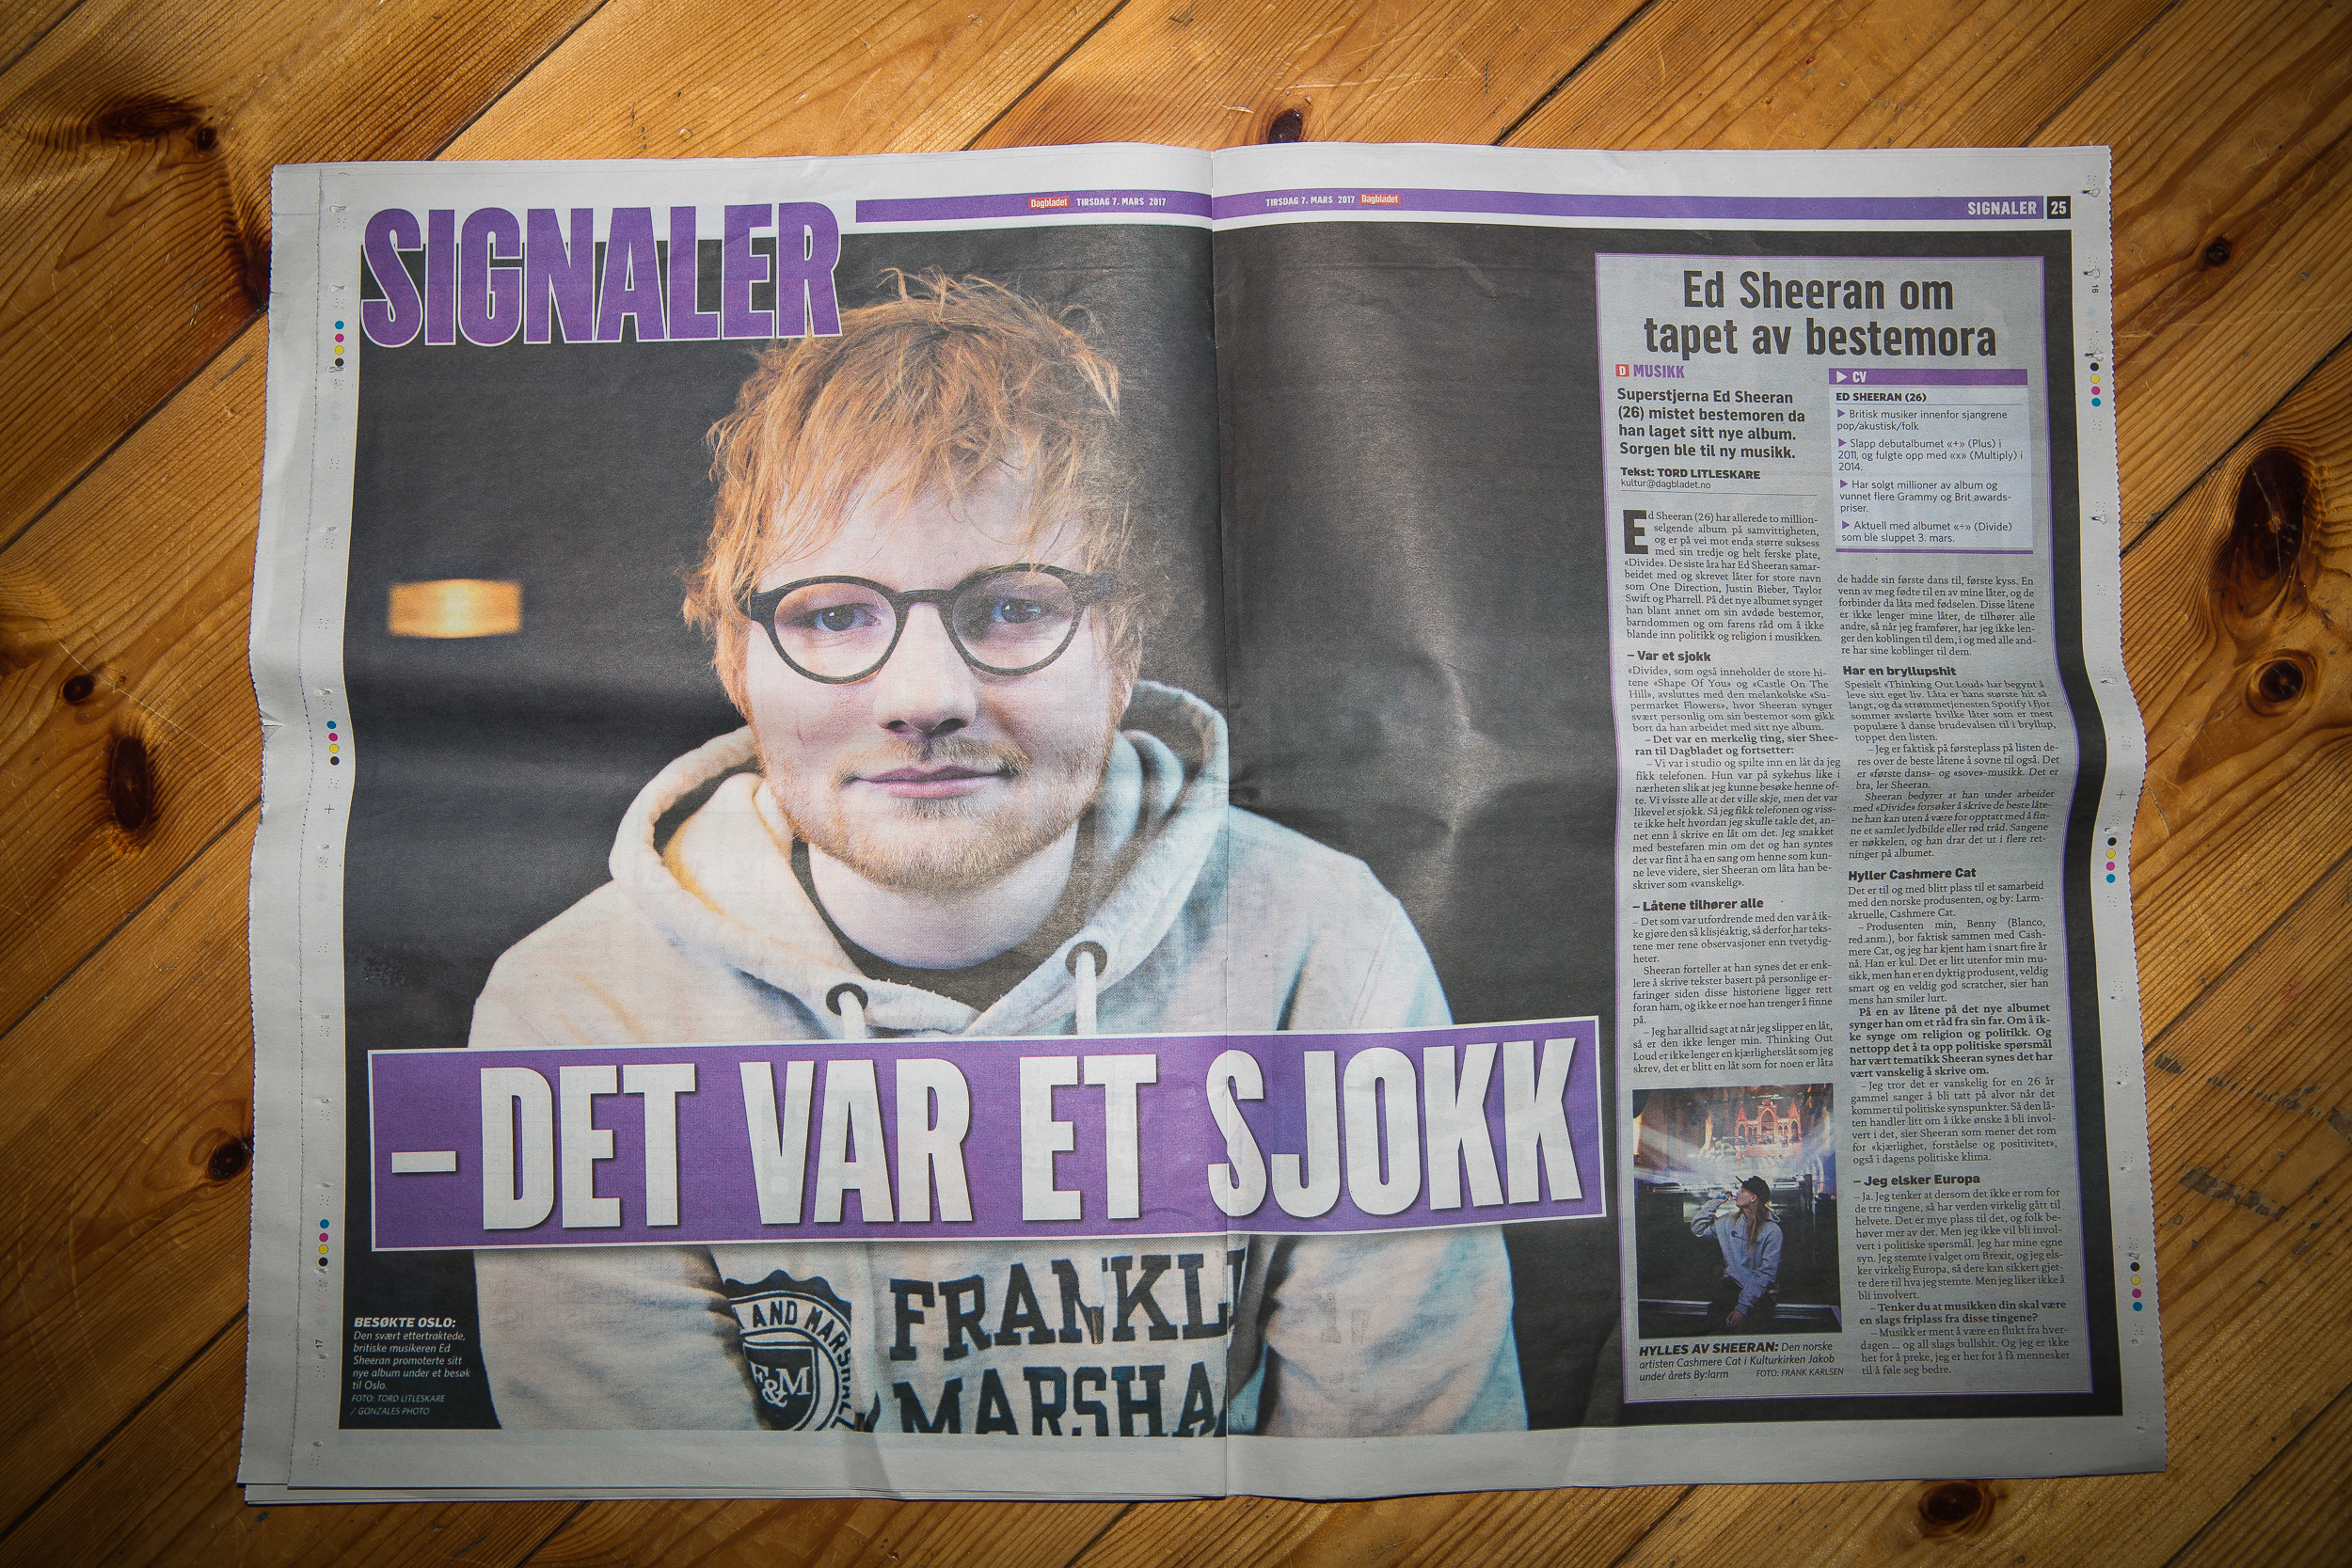 My interview (and photo) with Ed Sheeran in Dagbladet.